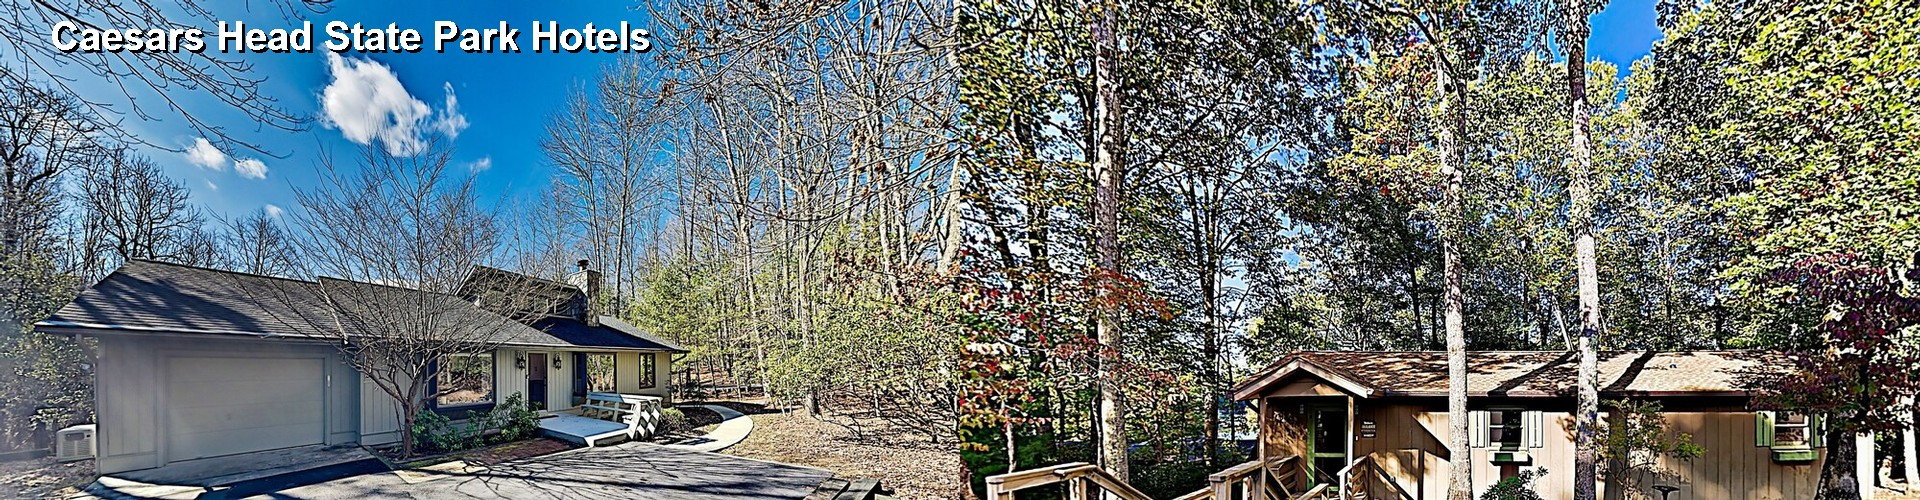 Fabulous Best Hotels Near Caesars Head State Park With Greenville Spartanburg Airport